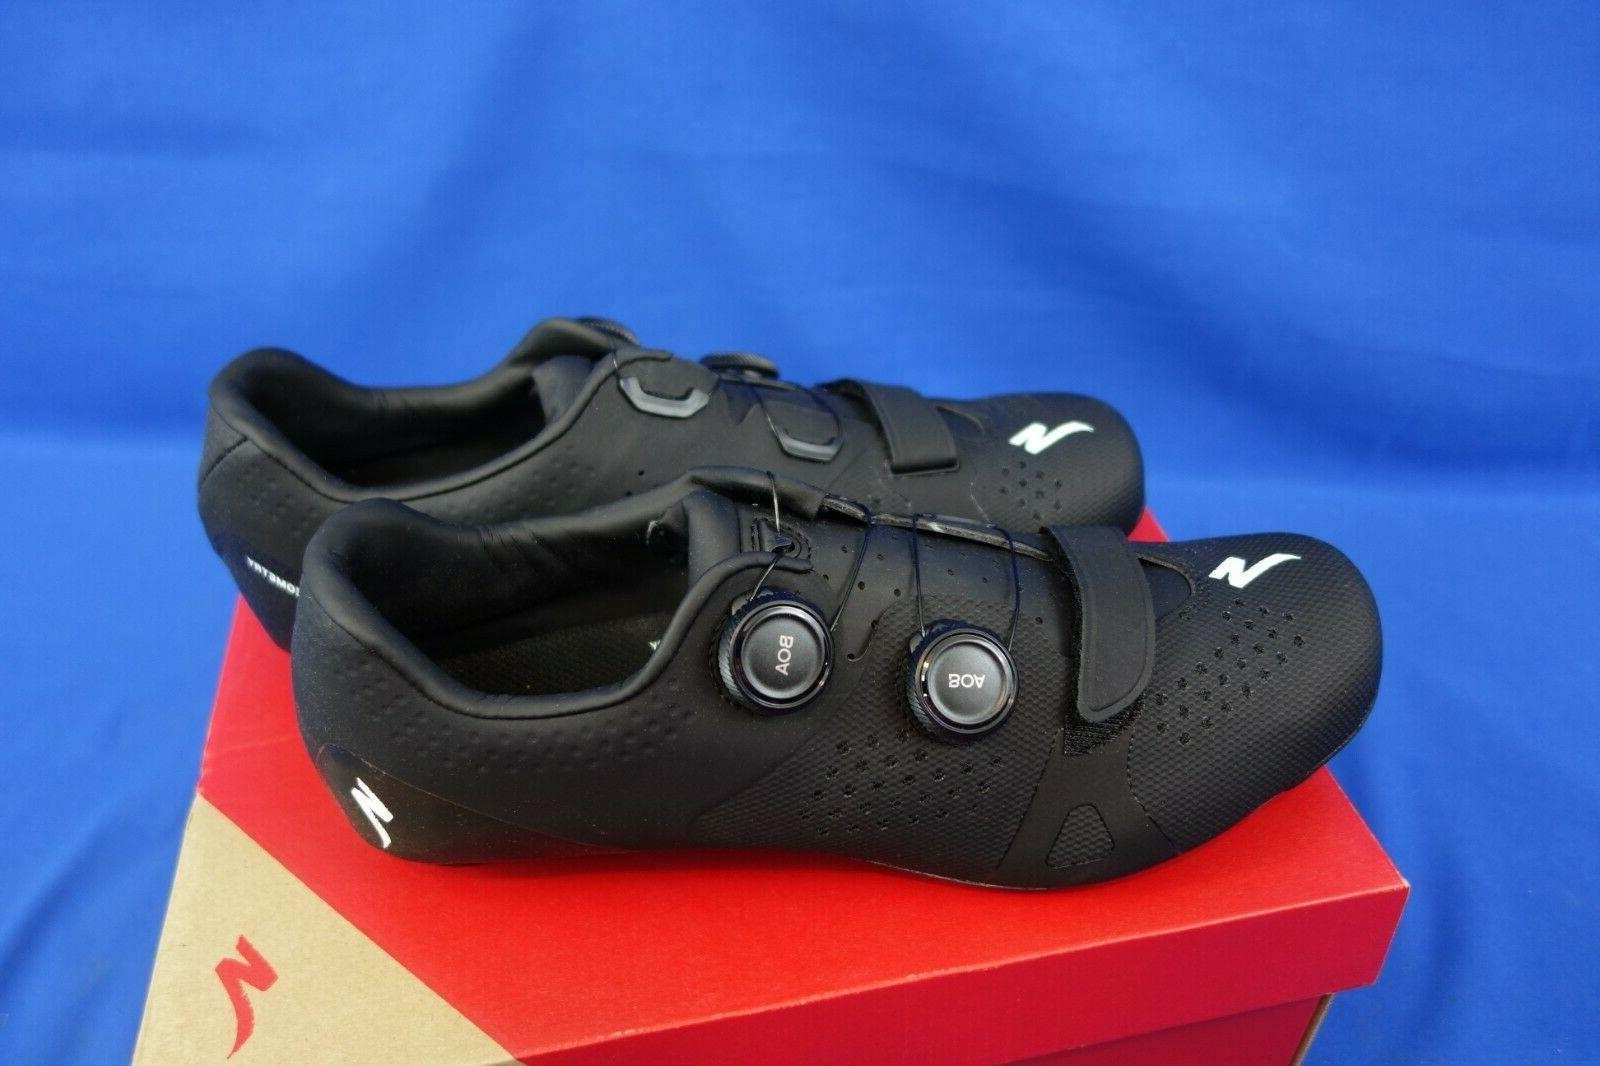 New Specialized Carbon Cycling Shoes Sizes*